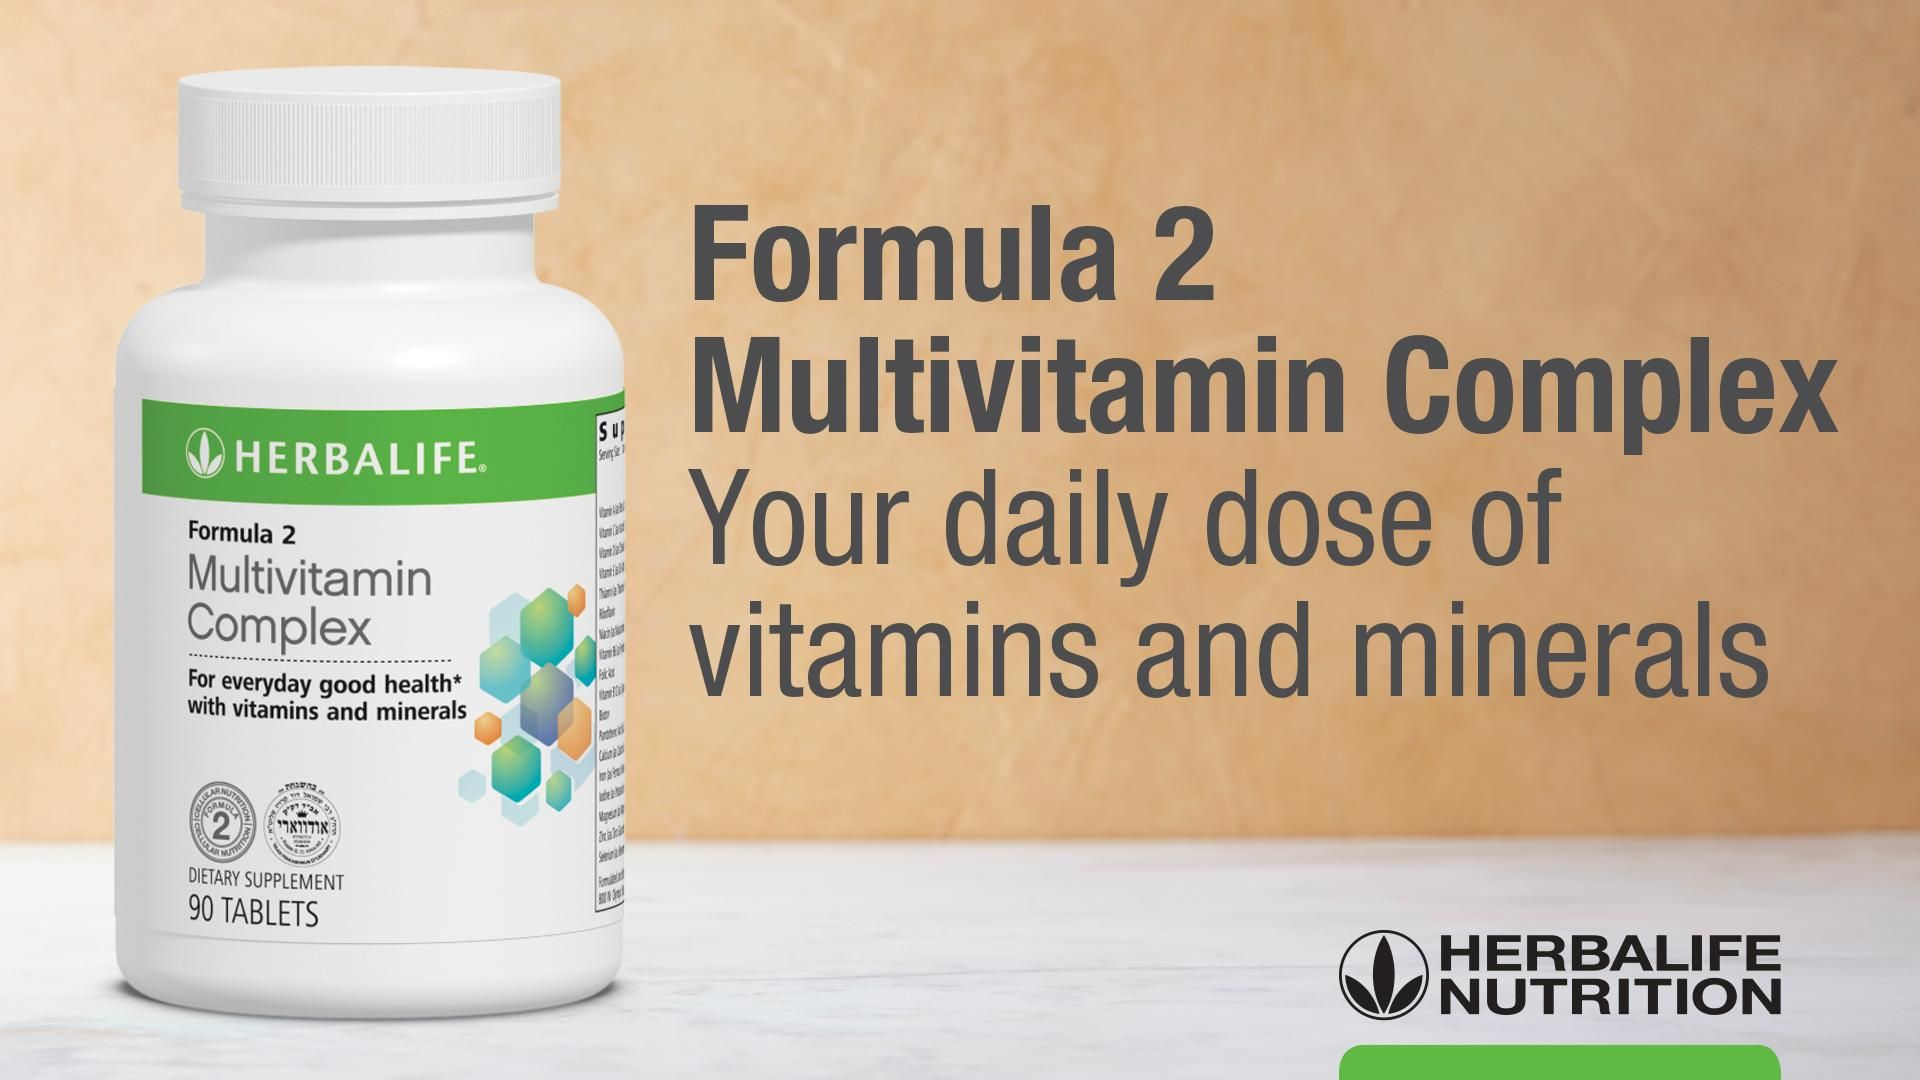 Formula 2 Multivitamin Complex: Know the Products